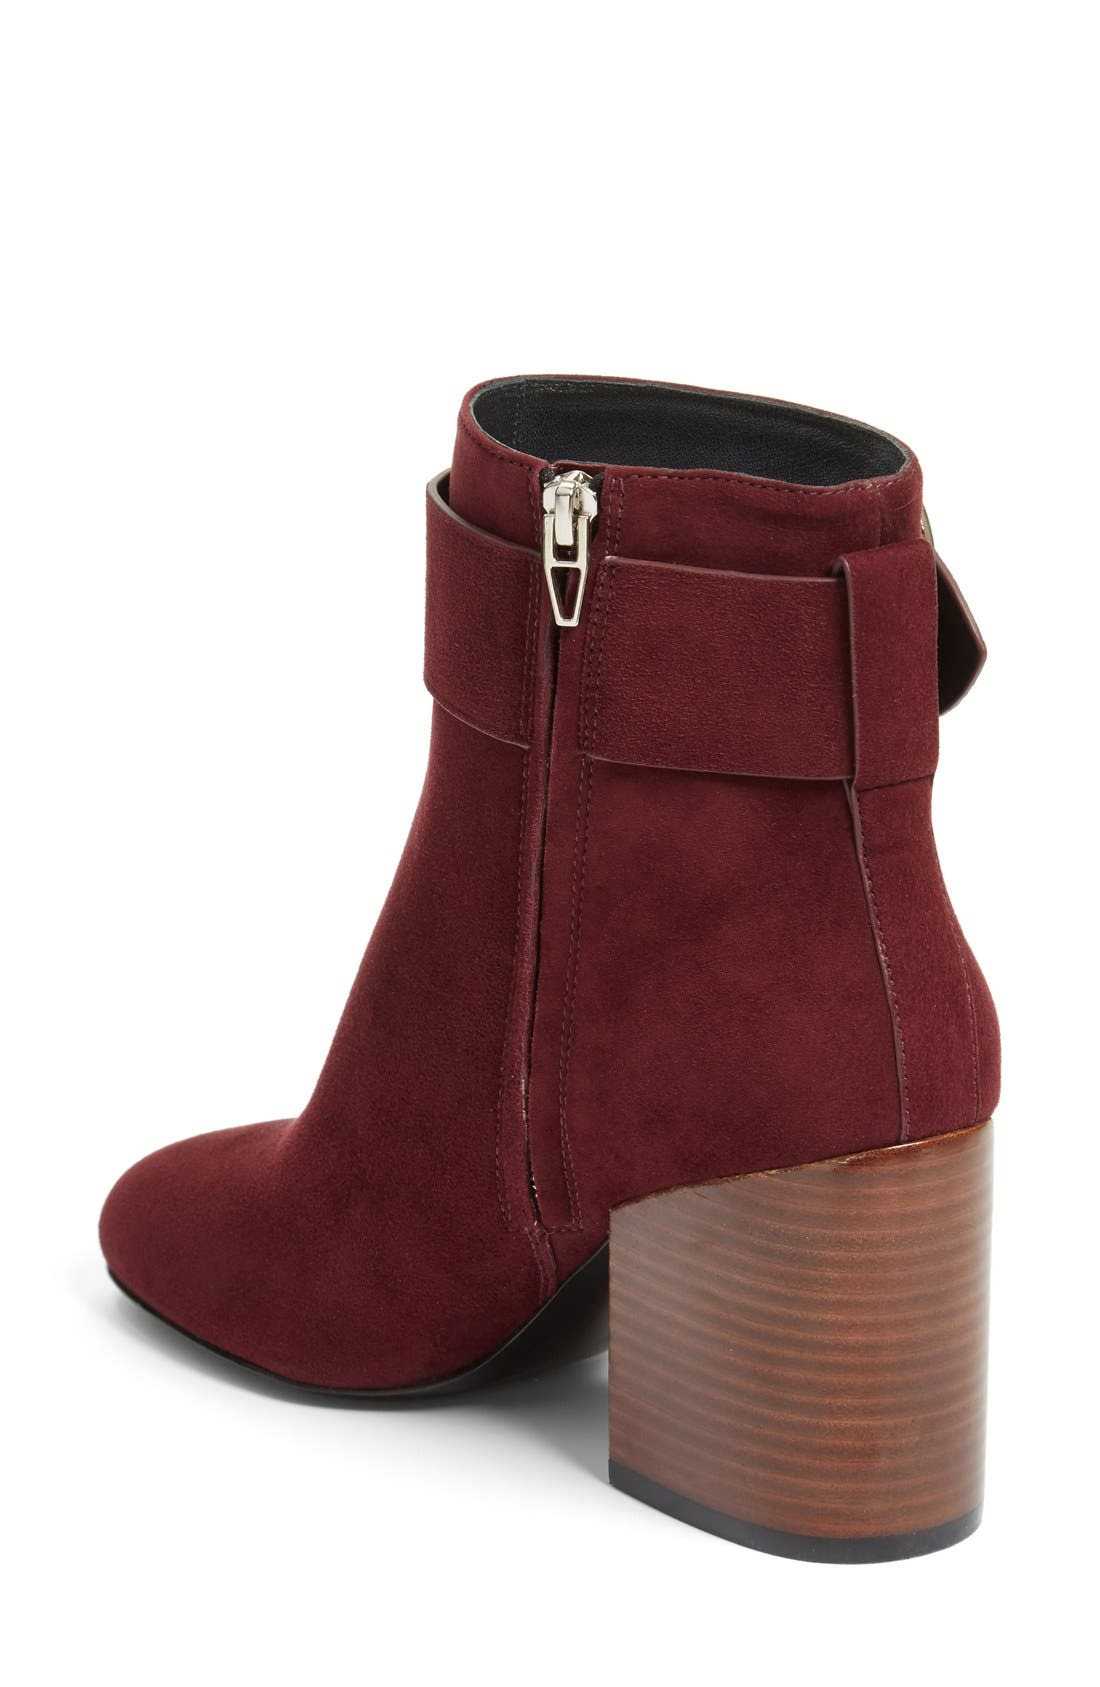 'Kenze' Bootie,                             Alternate thumbnail 2, color,                             930